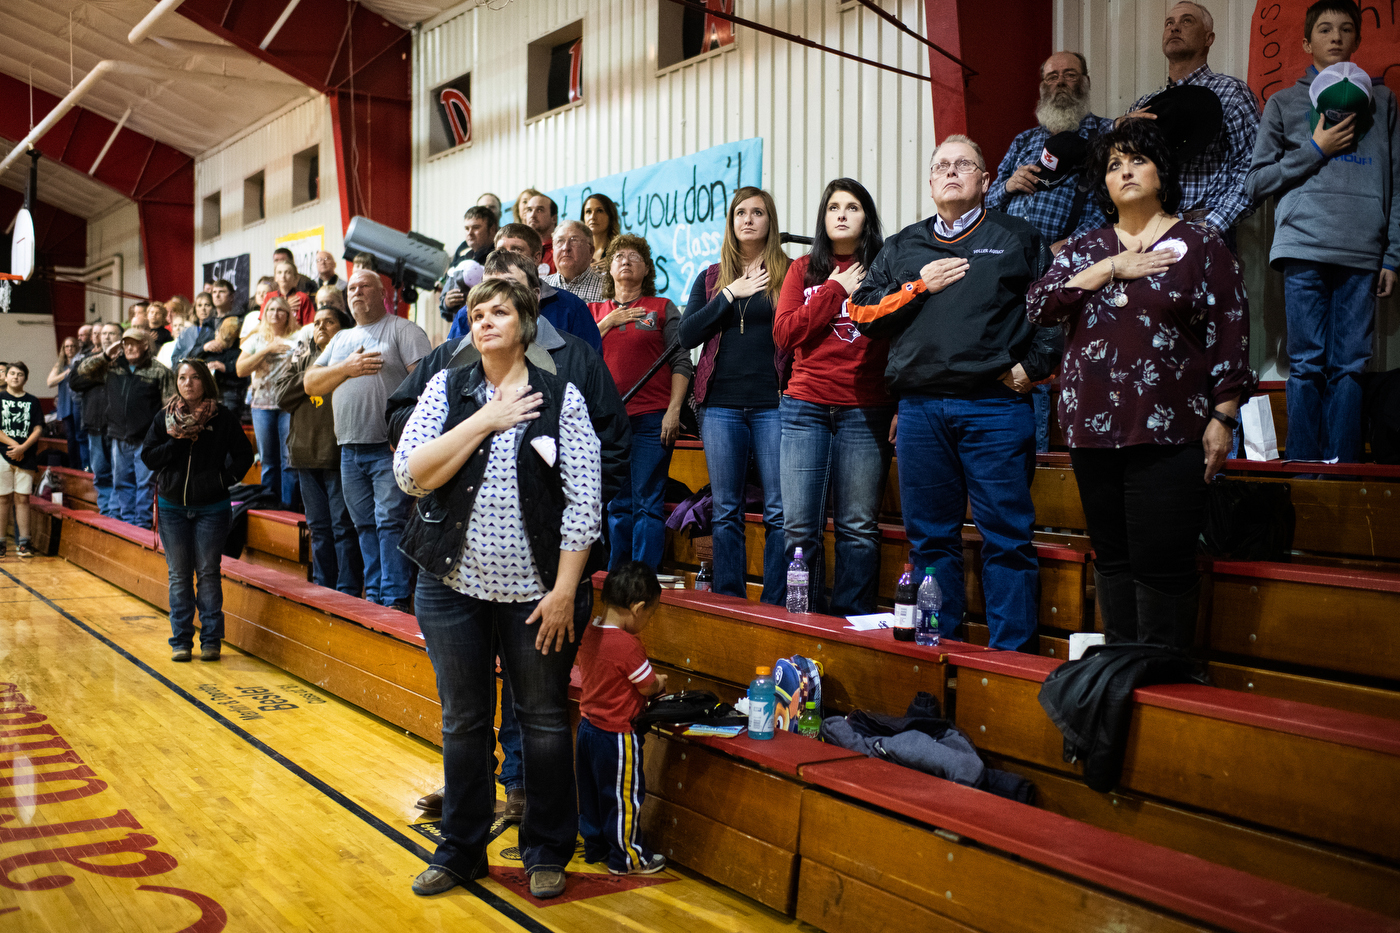 People stand for the national anthem at the Bison Cardinals varsity volleyball game against Mott-Regent High School in Bison, SD.